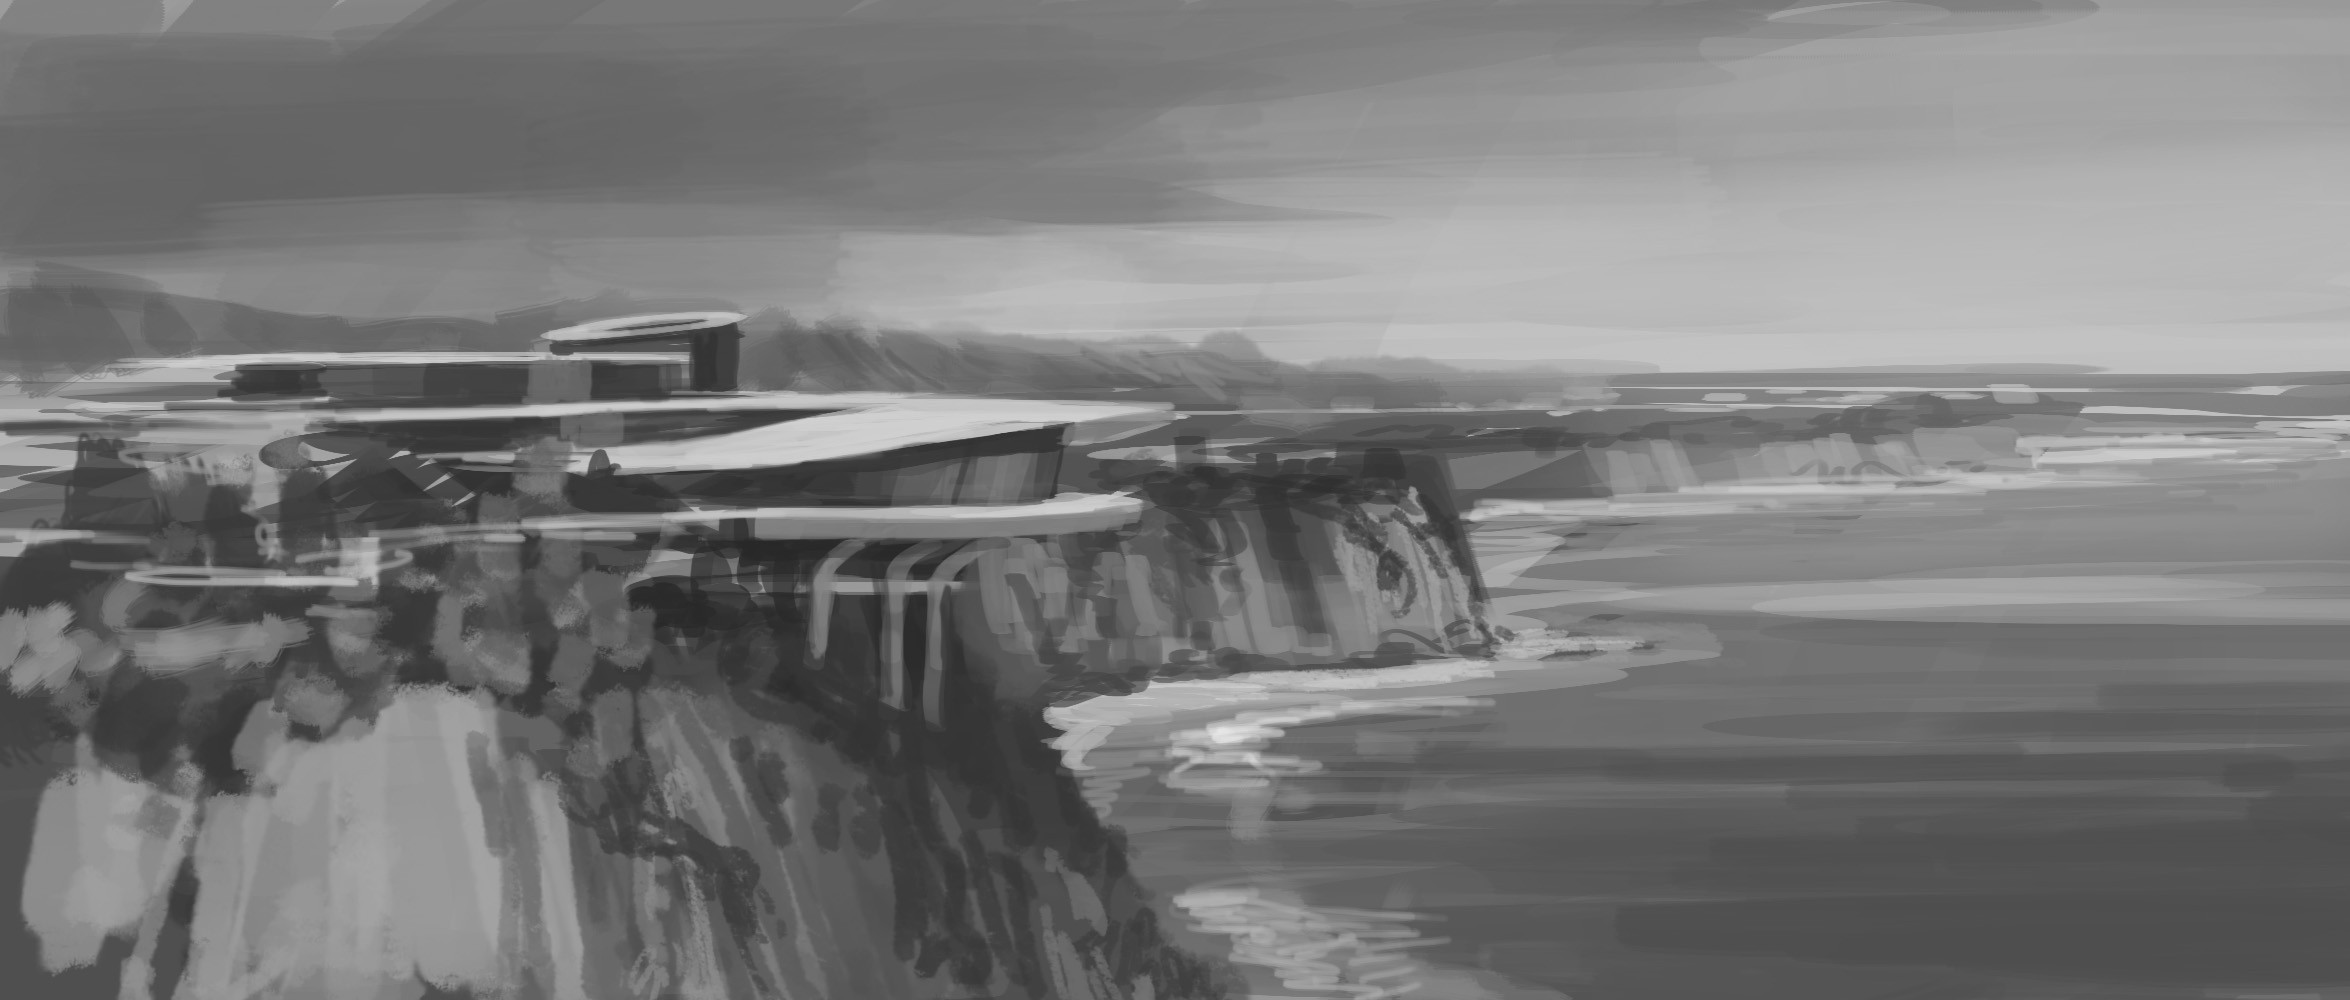 The first sketch that nailed the final look, with the terraced organic forms and spiraling roofline.